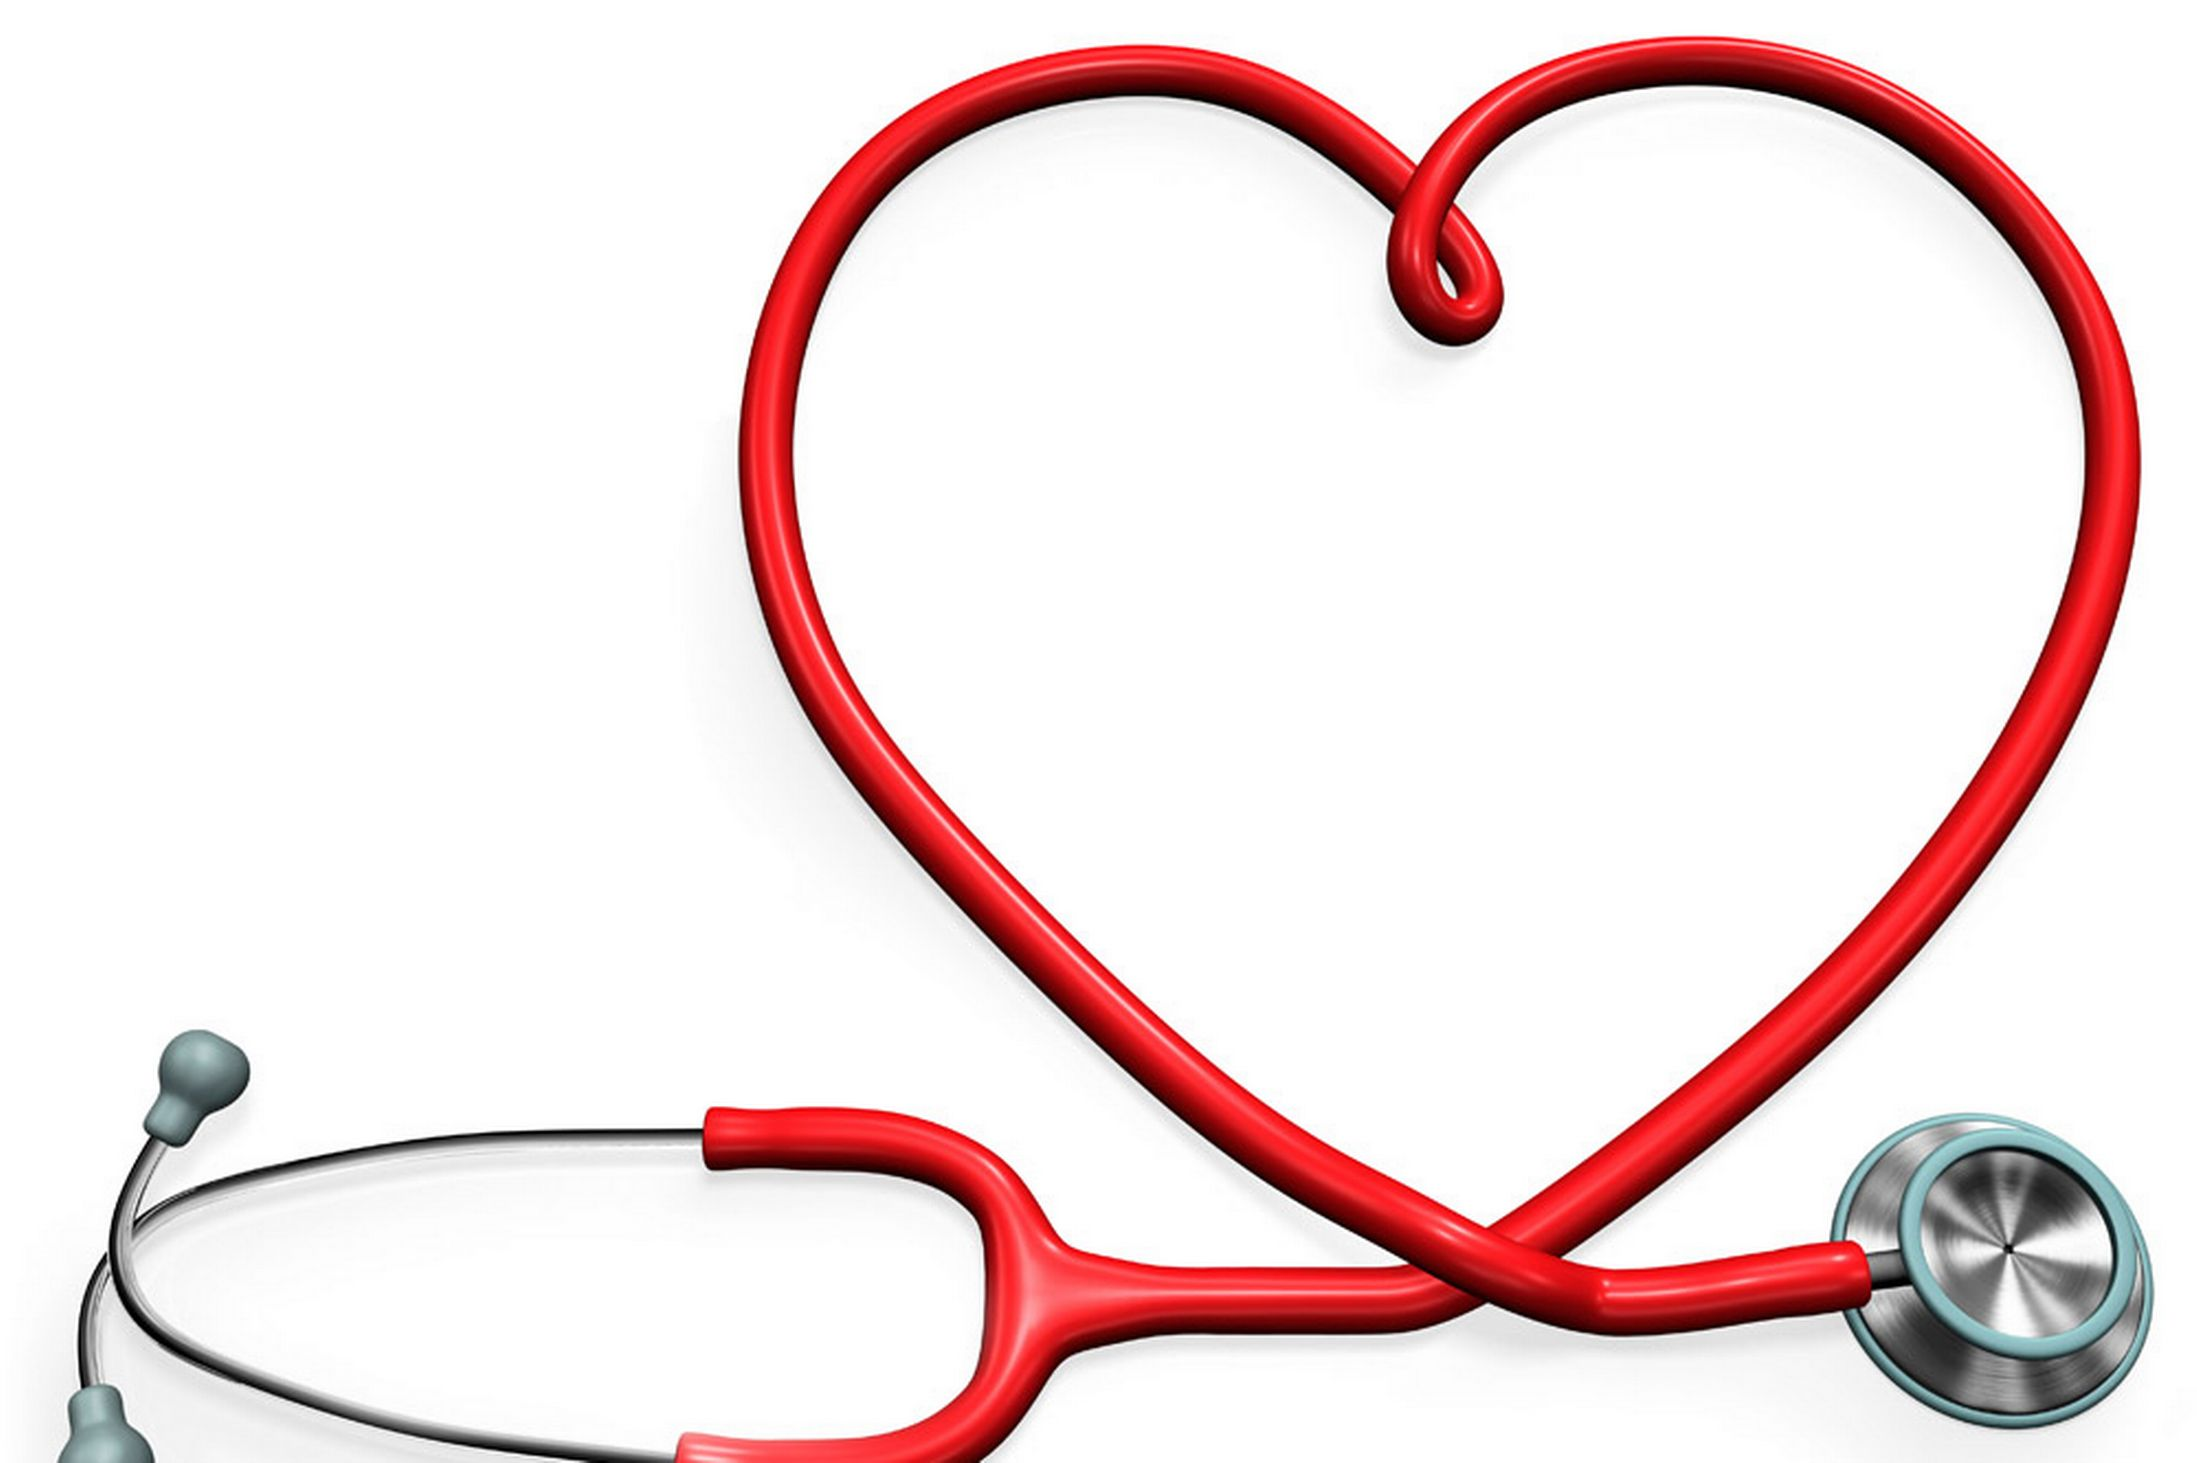 Heart clip art library. Needle clipart stethoscope